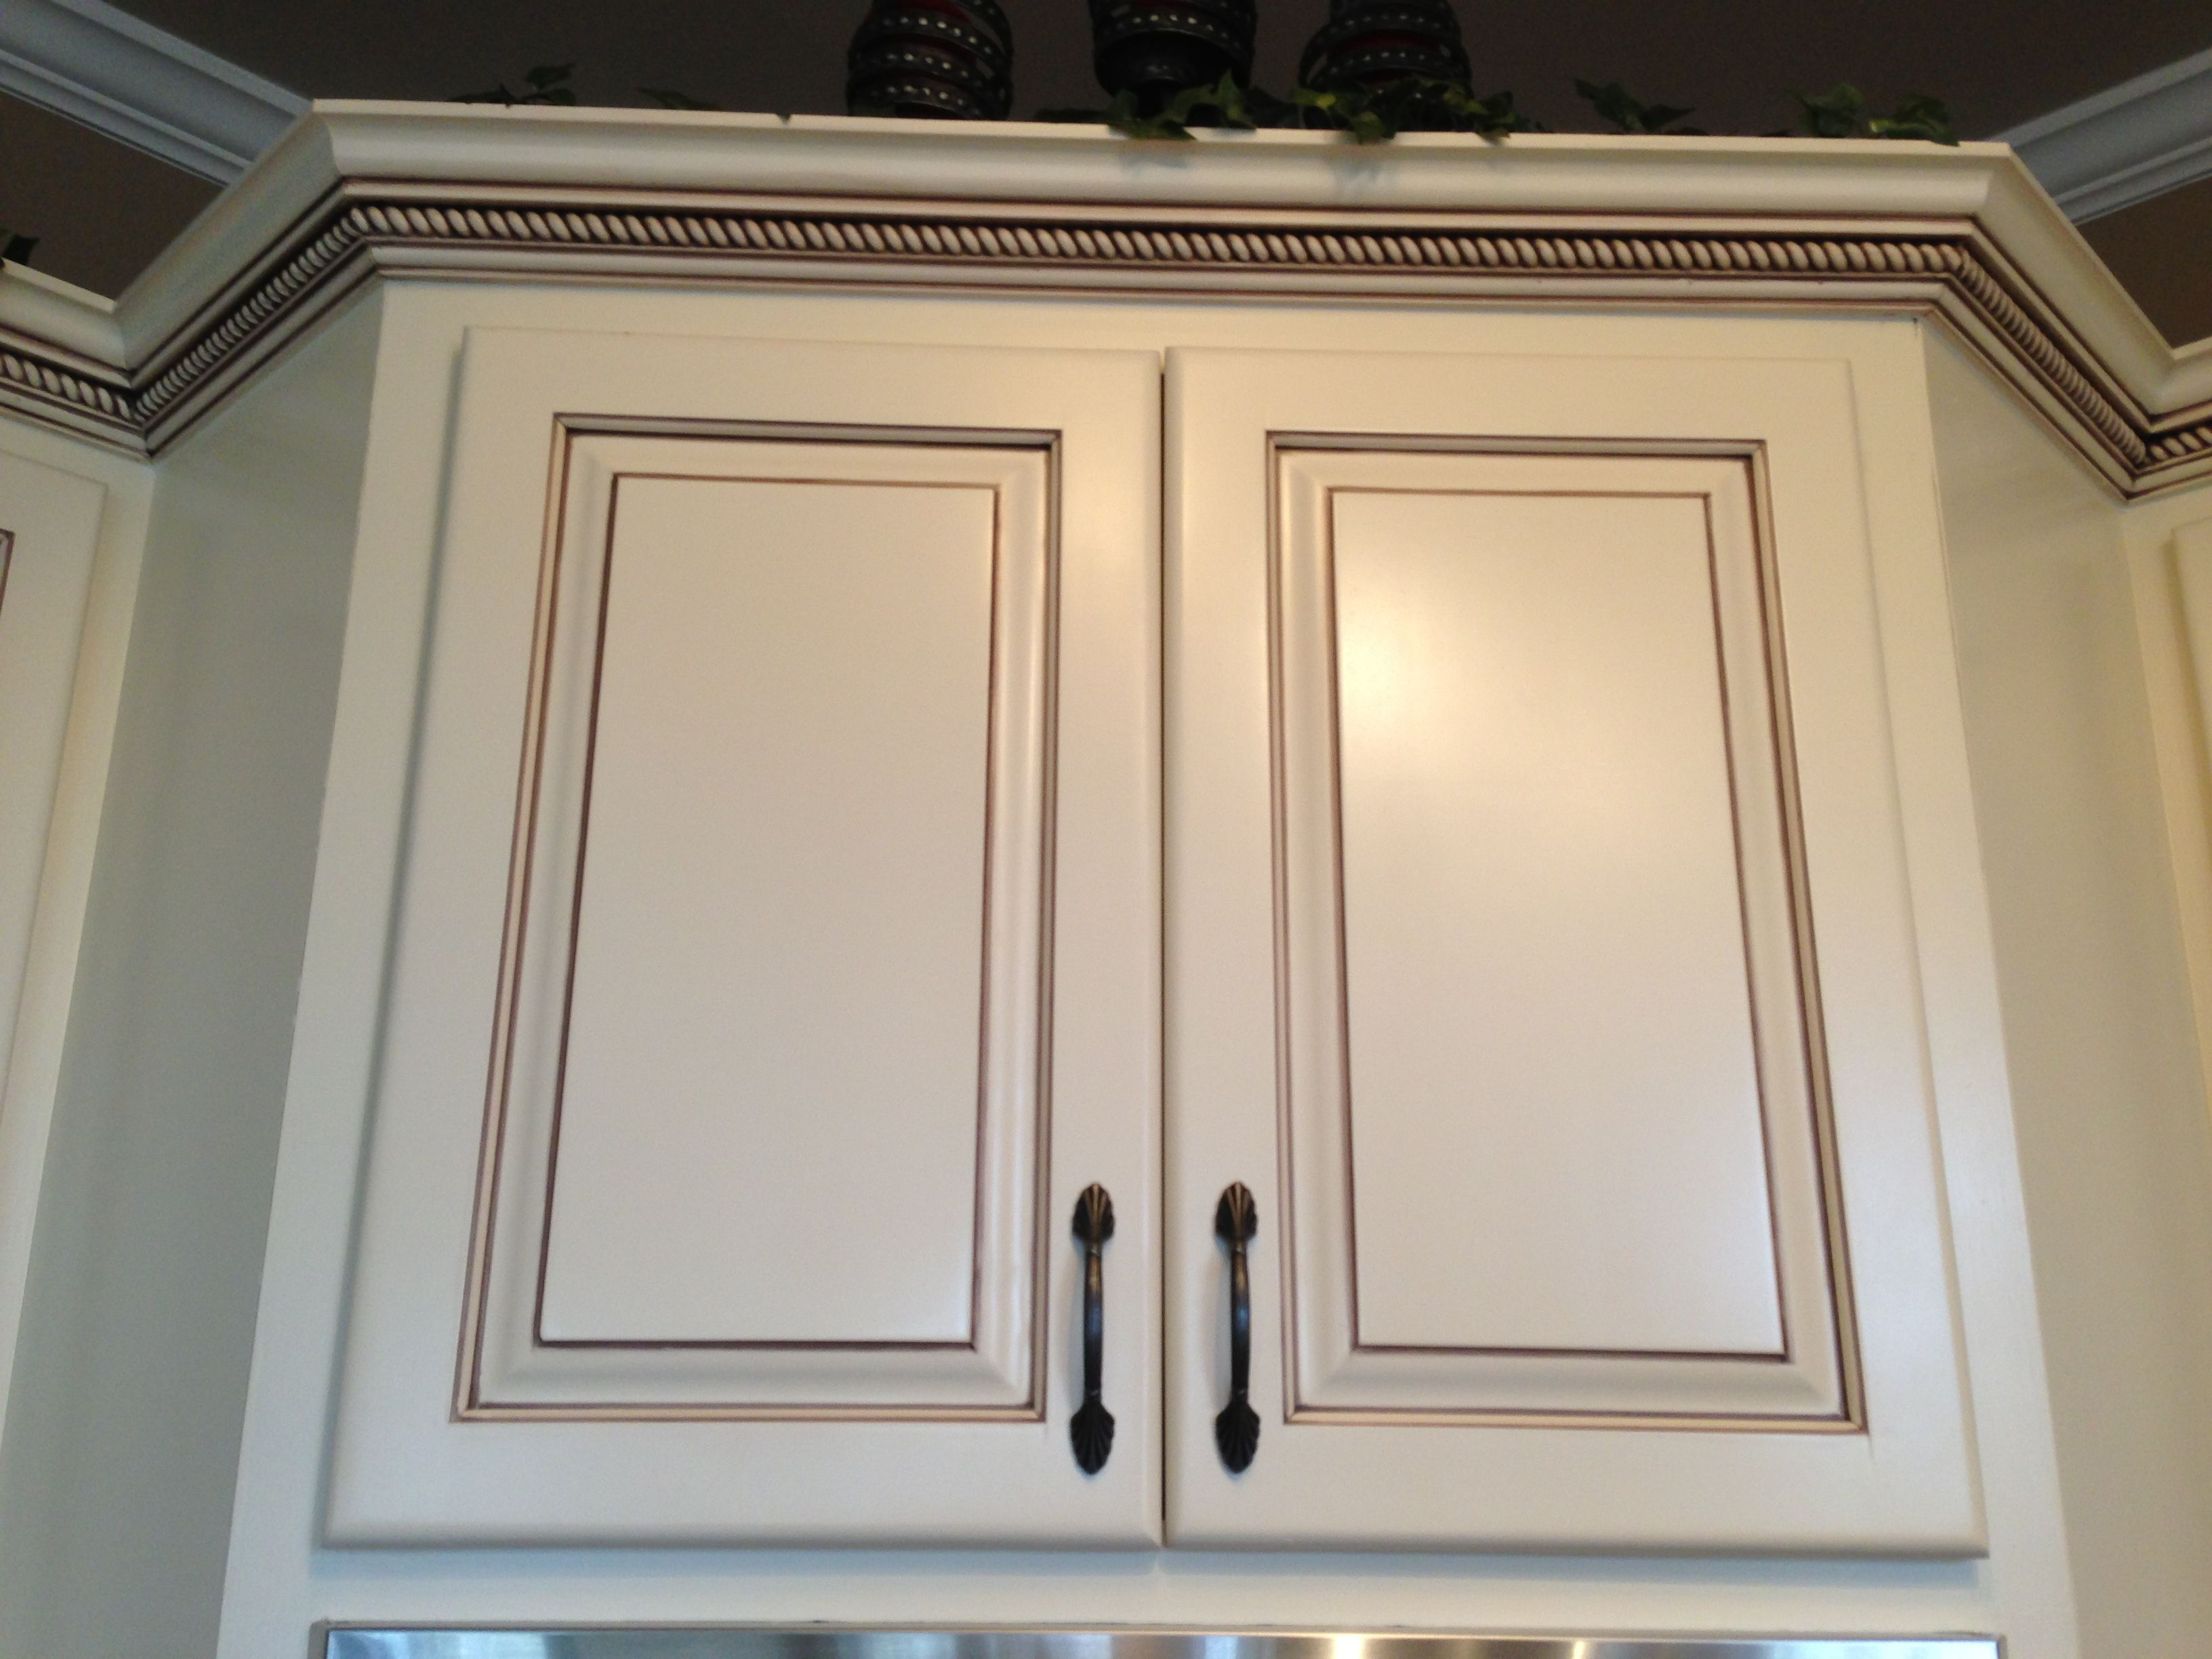 My Dream Kitchen Cabinets At Last Painted Maple Cabinets Antique White Almond Added Light Rai Dream Kitchen Cabinets Glazed Kitchen Cabinets Maple Cabinets